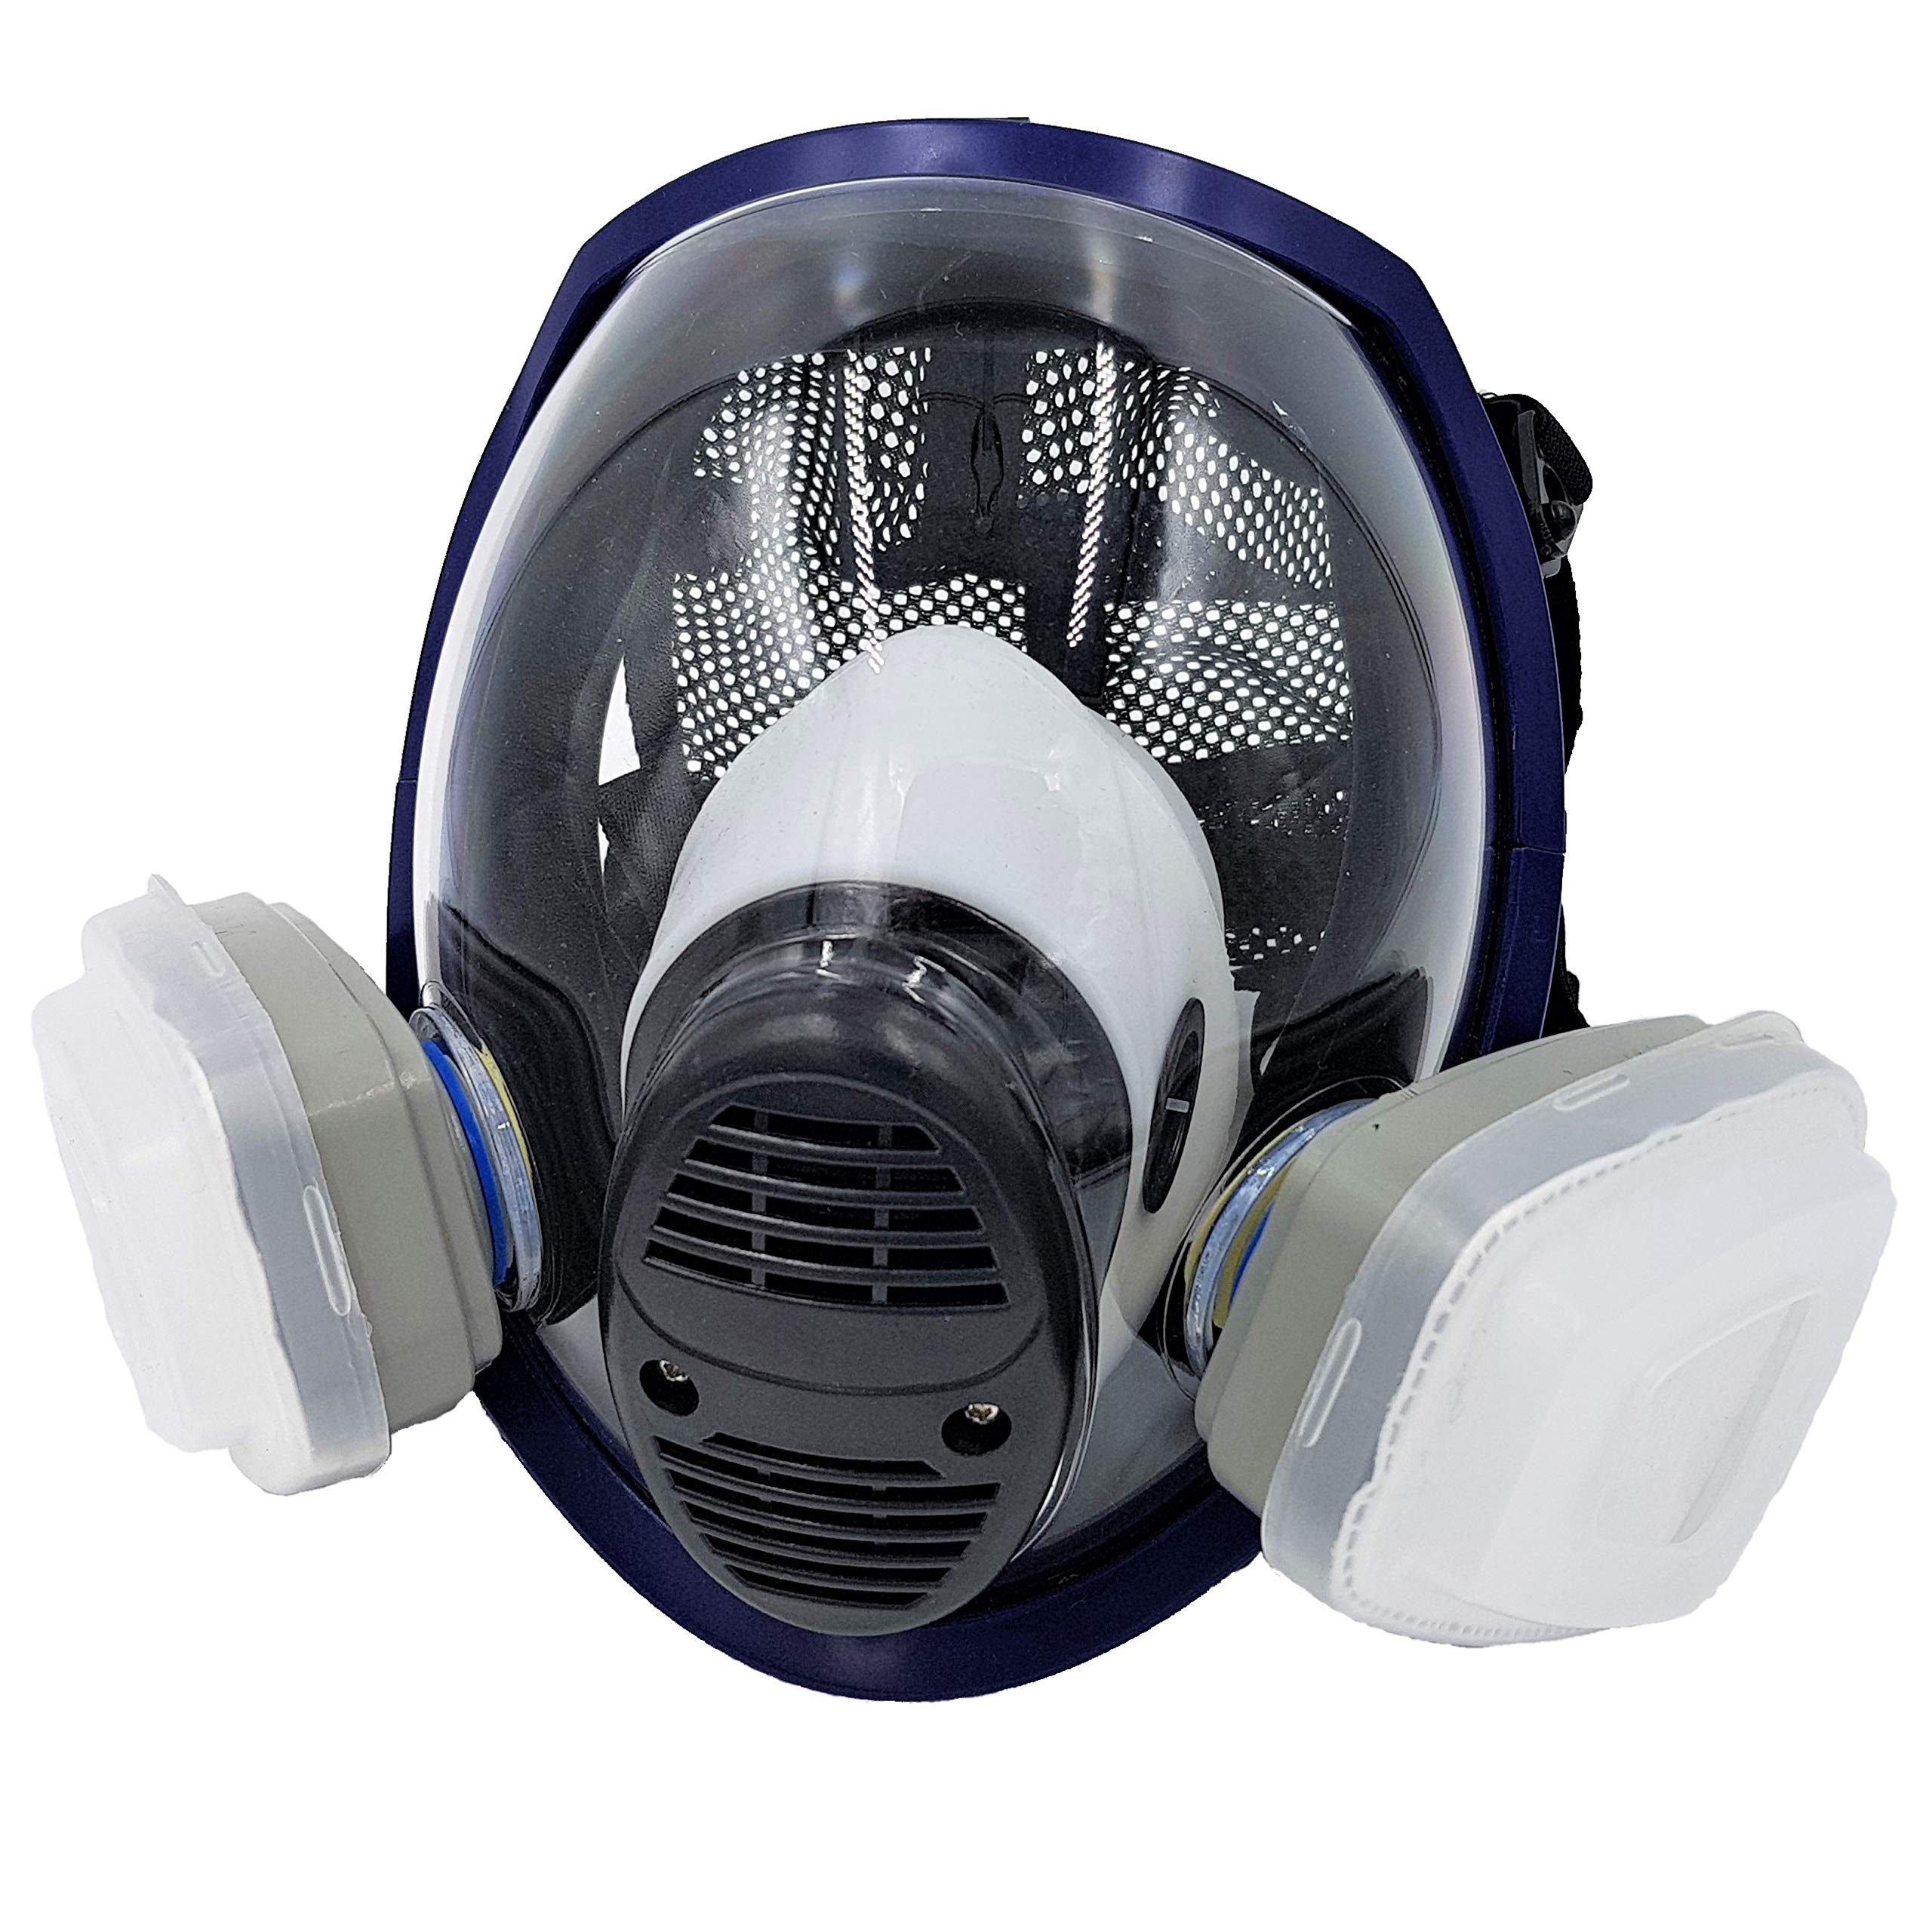 WiseLime Organic Full Face Respirator Mask for Chemicals, Smoke, Paint Spray and Tear Gas, Industrial Grade Quality Gas Mask including 2 Filters (Gas Mask + 1 Pair of #3 Filter Cartridges) by WiseLime (Image #1)